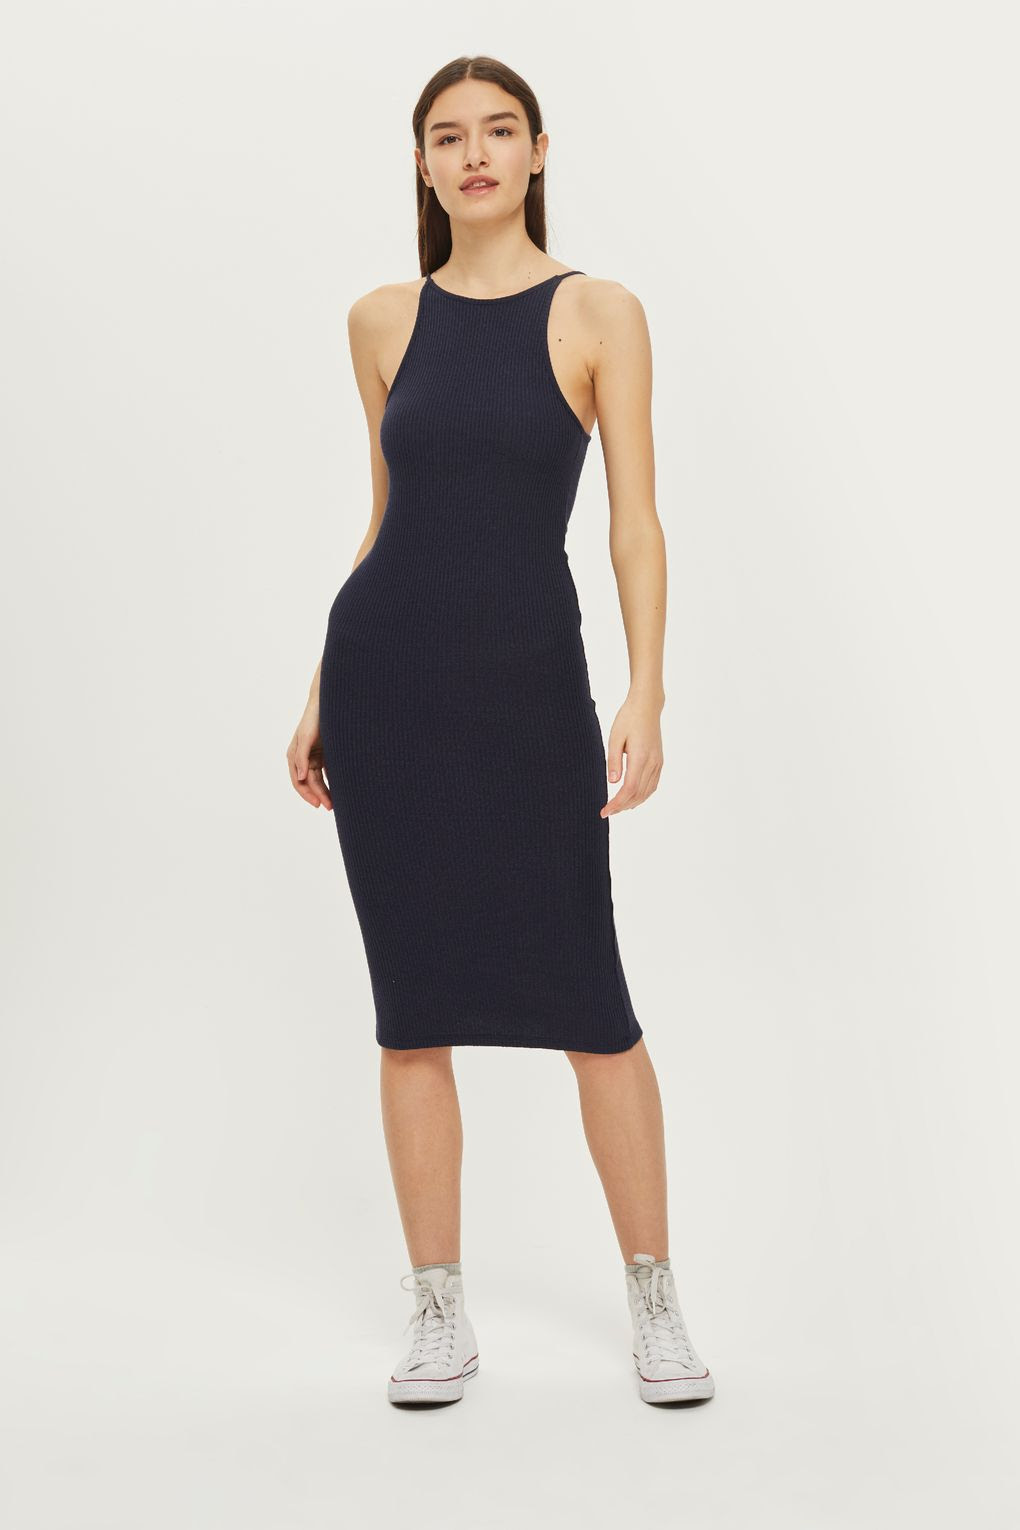 Tralee buy where can dresses you bodycon